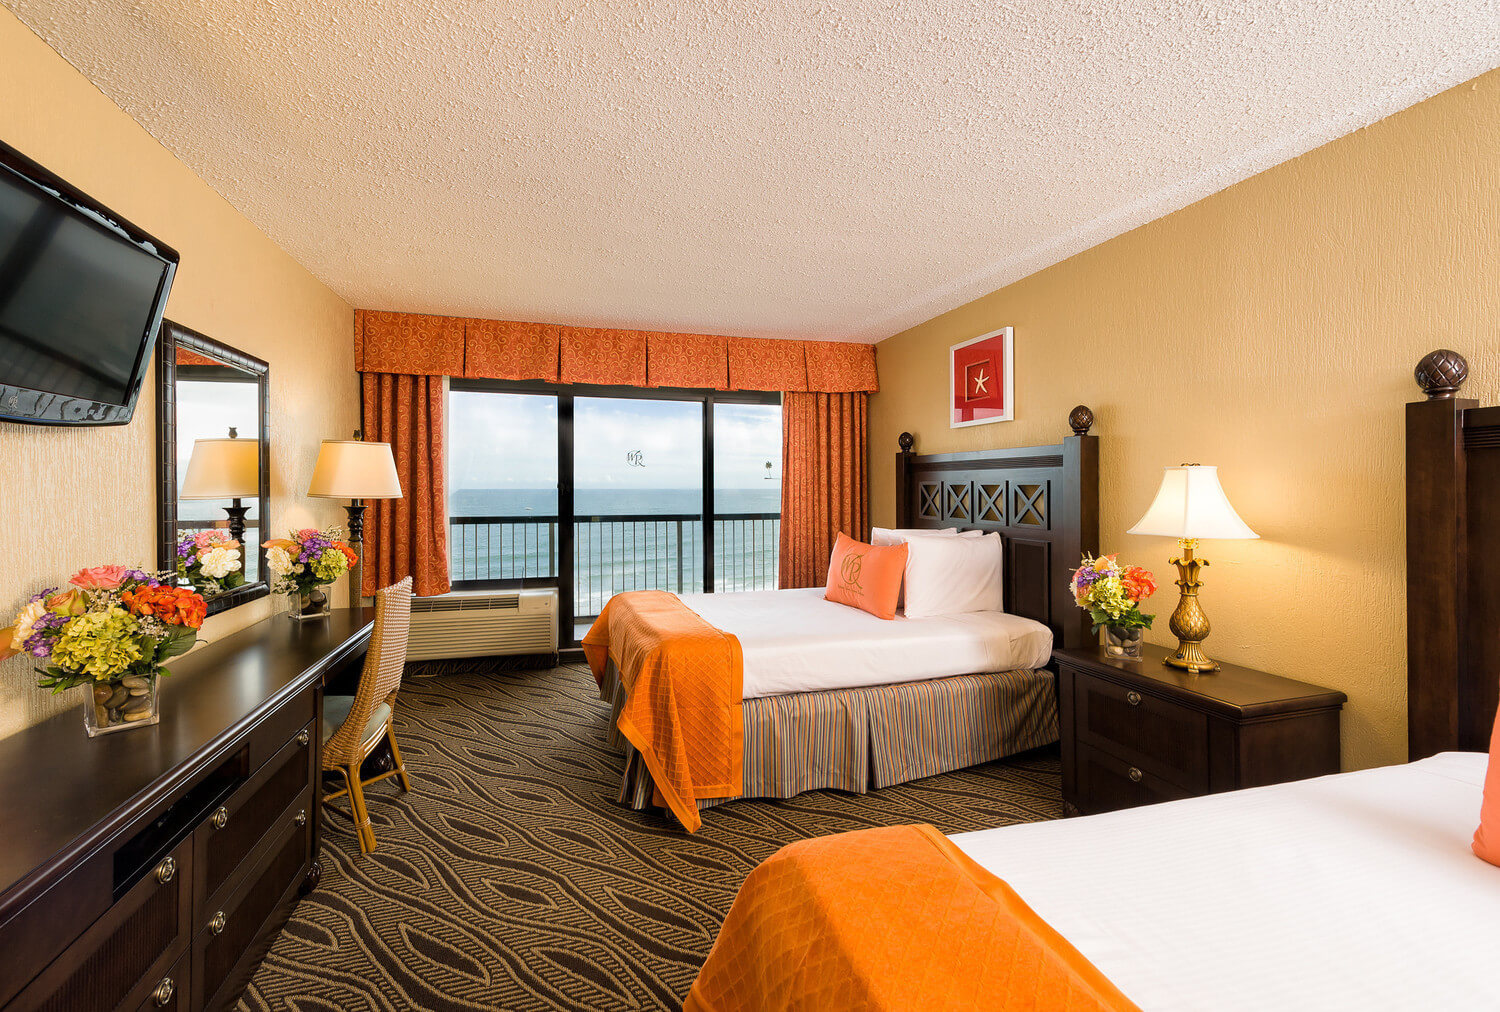 The Double Oceanfront Guestroom At Westgate Myrtle Beach Resort Offers An Intimate Setting With Room For Up To Four Guests